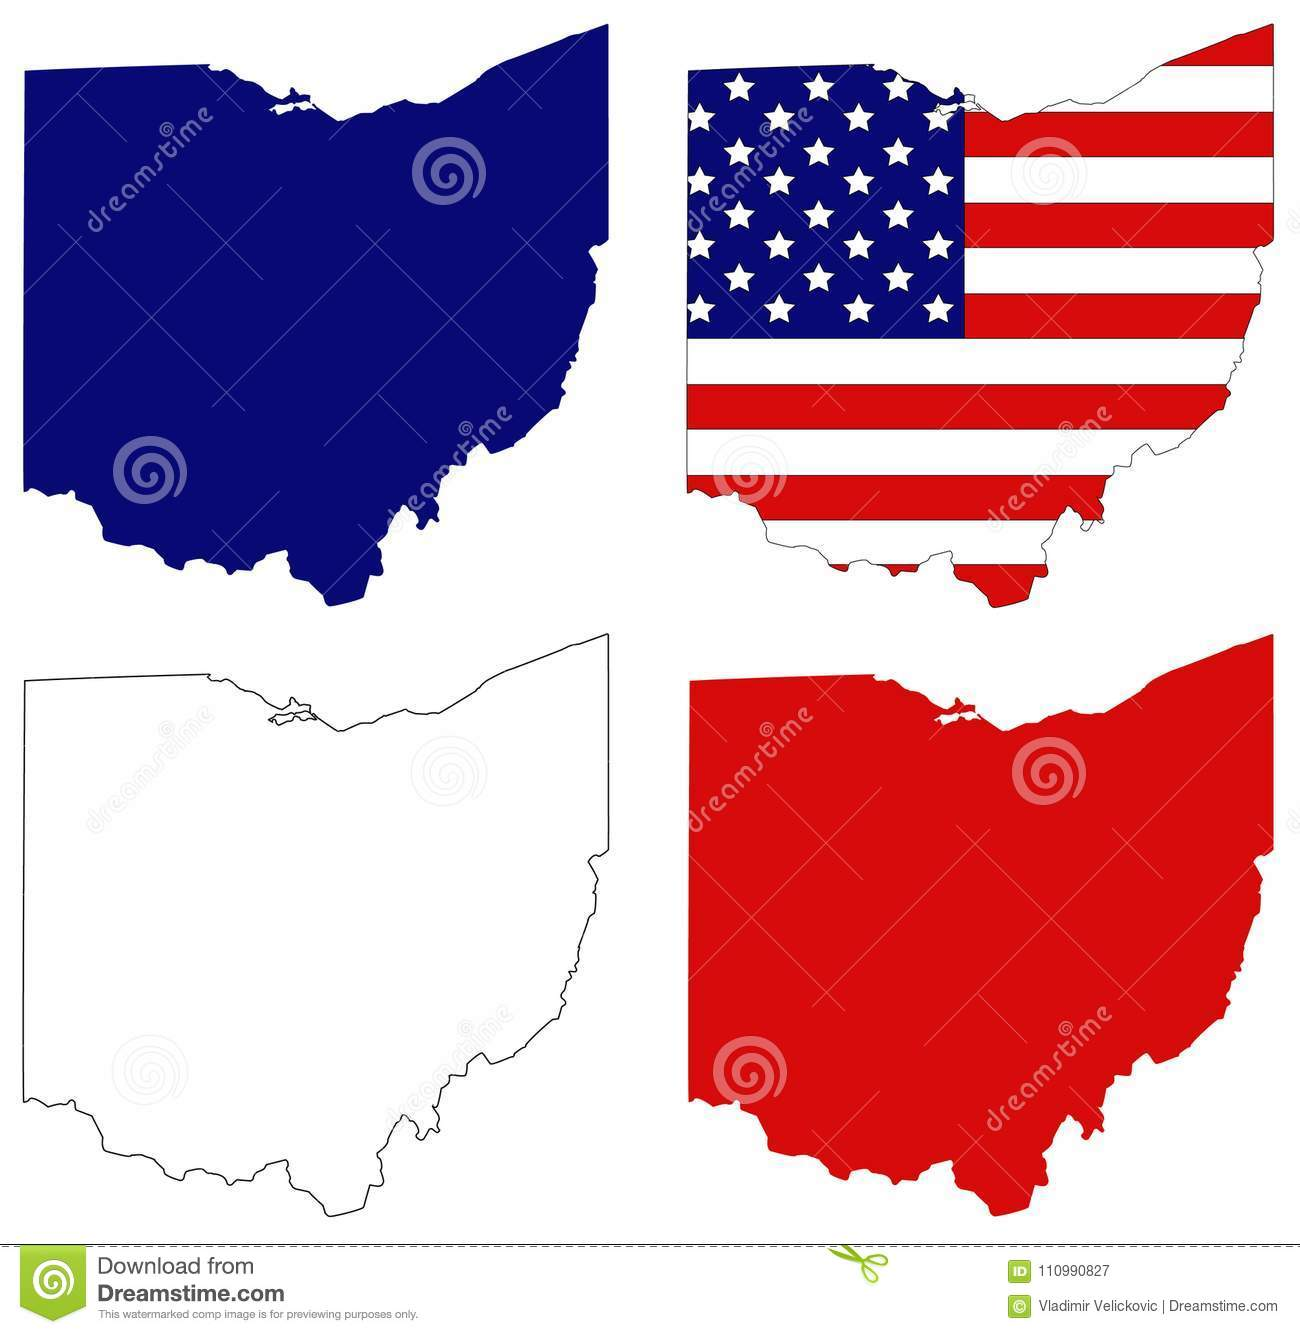 Ohio Map With USA Flag - Midwestern State In The Great Lakes Region ...